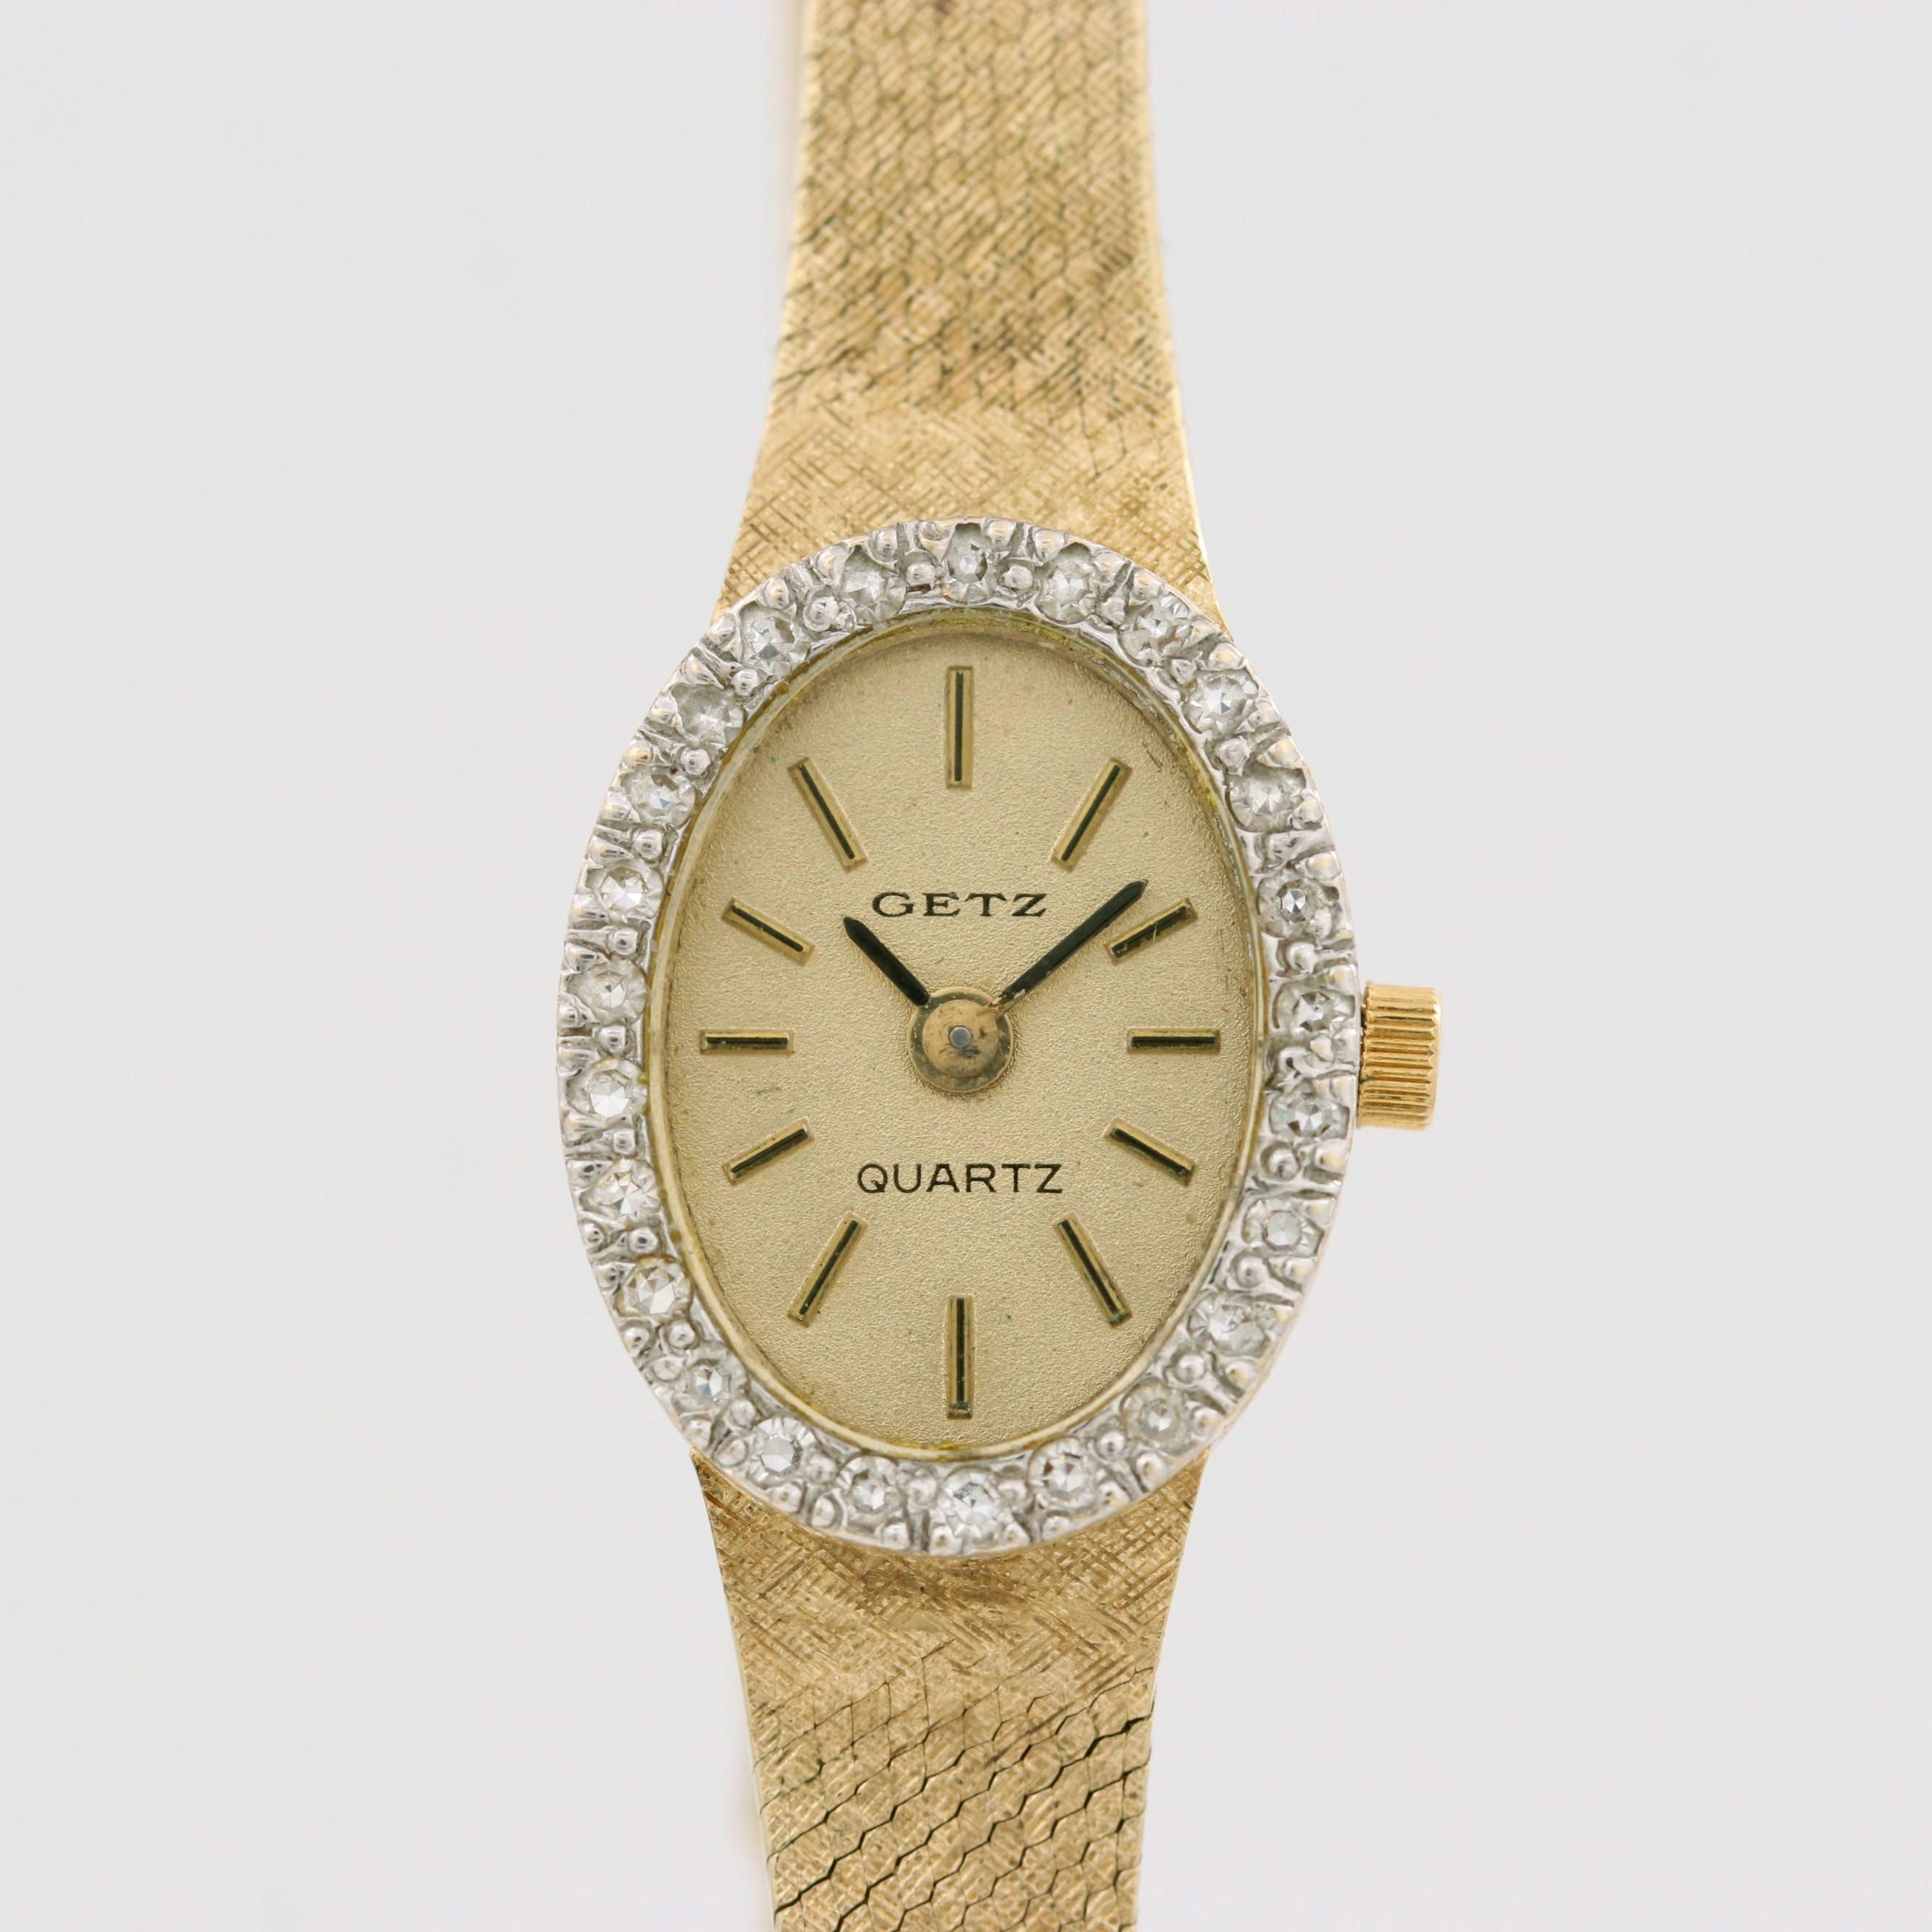 Vintage Getz 14K Gold Quartz Wristwatch With Diamond Bezel